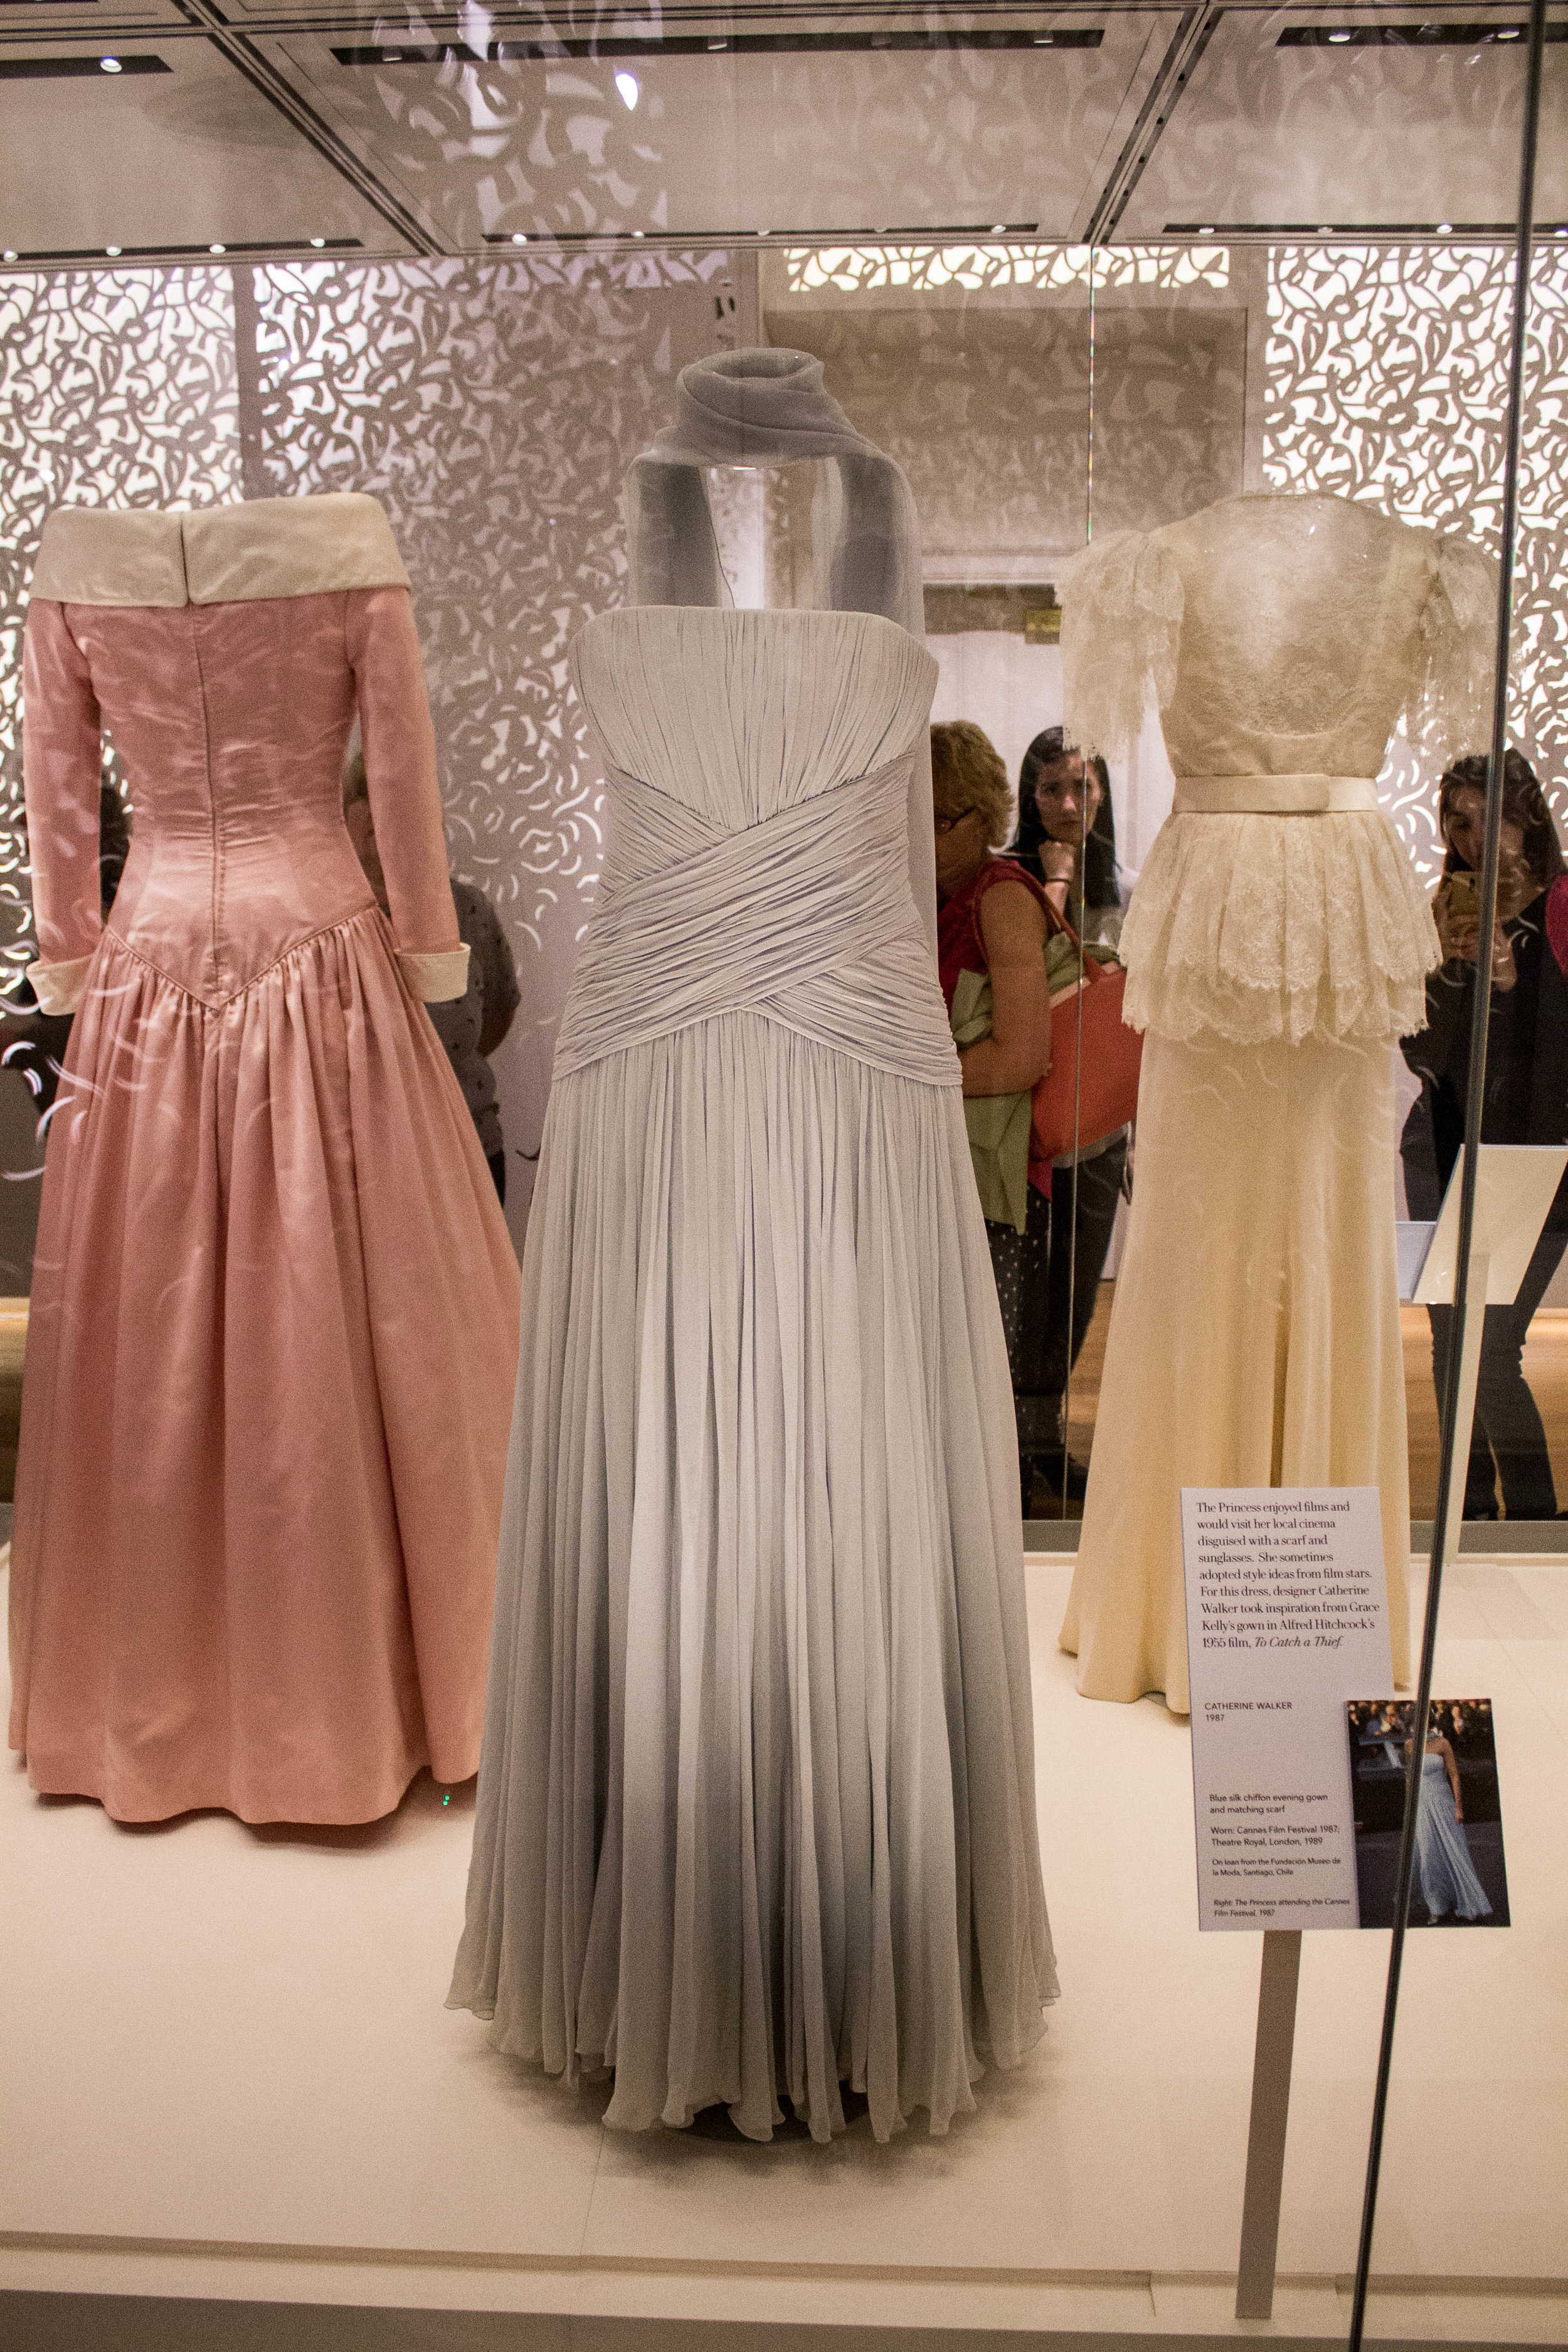 Princess Dianna Exhibit